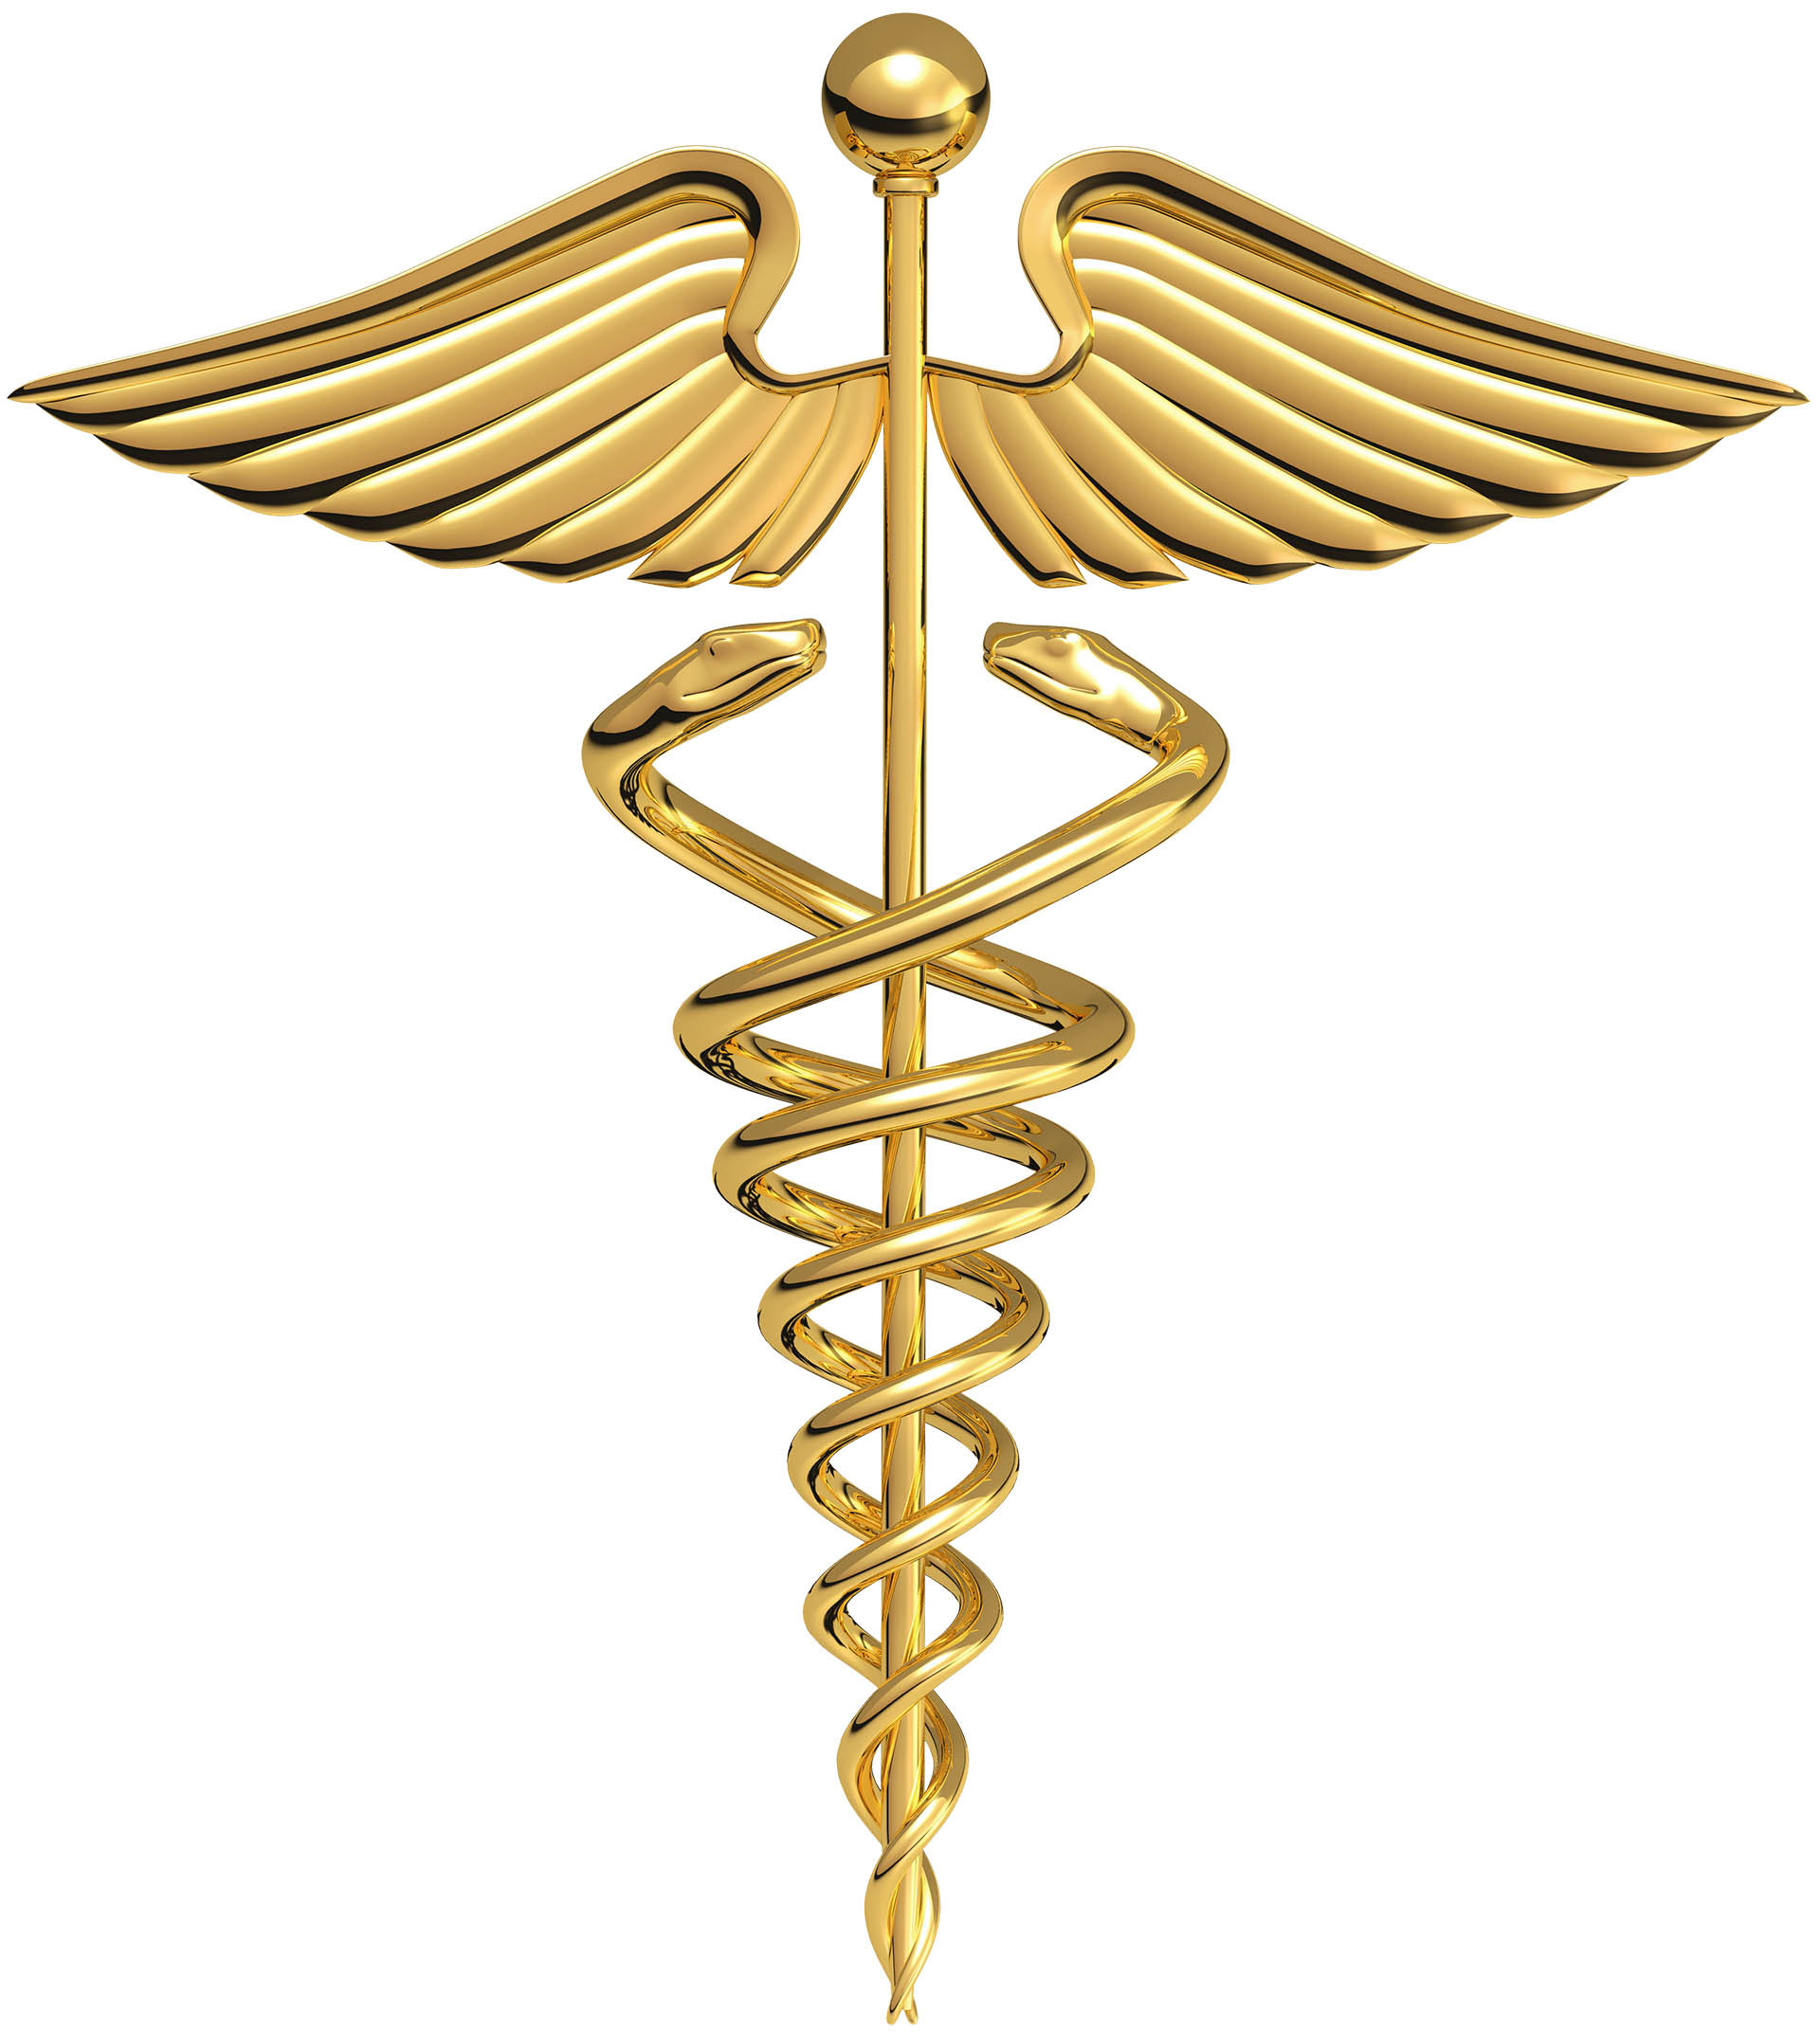 Caduceus - HEALTH - Messenger of the gods - COMPASSION - MERCY - DO NO HARM - FEAR NOT - BE NOT AFRAID - CAUSE NO PAIN - BE AS PAINLESS AS POSSIBLE - CAUSE NO FEAR - DO NOT BE SCARY - USE BIRTH CONTROL - PERMIT DIVORCE - DO NOT PUNISH - DO NOT MAKE THREATS - DO NOT BE COERCIVE - BE PERMISSIVE - BE TOLERANT - FREE UNIVERSAL HEALTH CARE - FREE UNIVERSAL EDUCATION